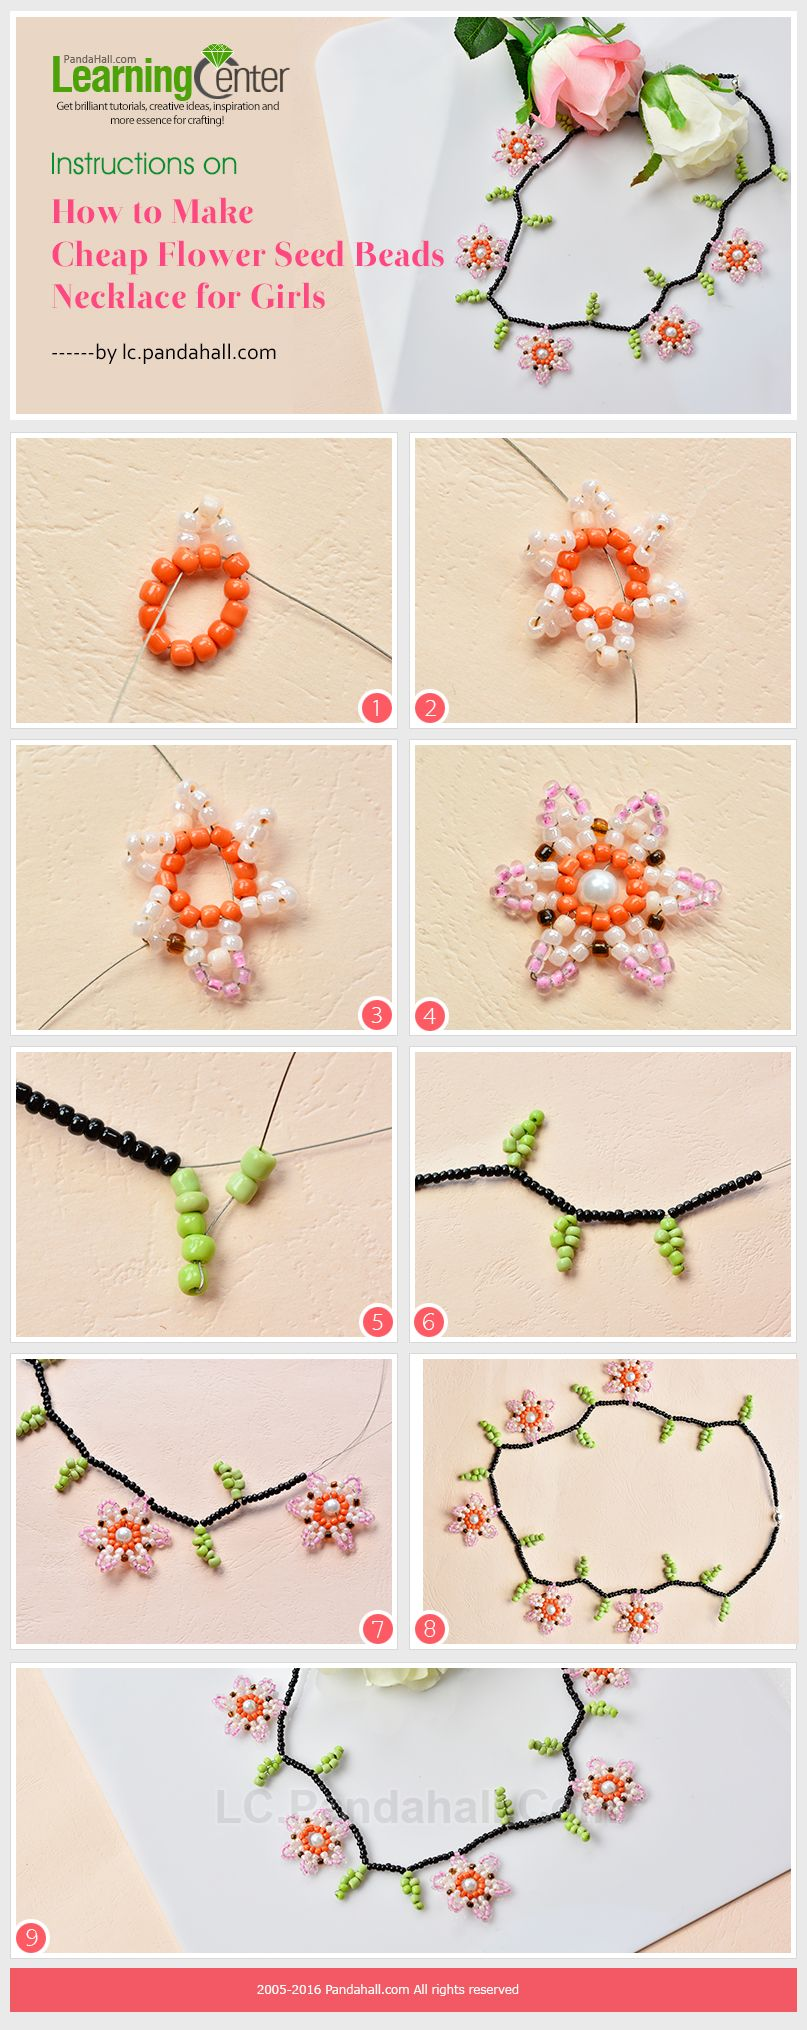 Instructions on How to Make Cheap Flower Seed Beads Necklace for Girls from LC.